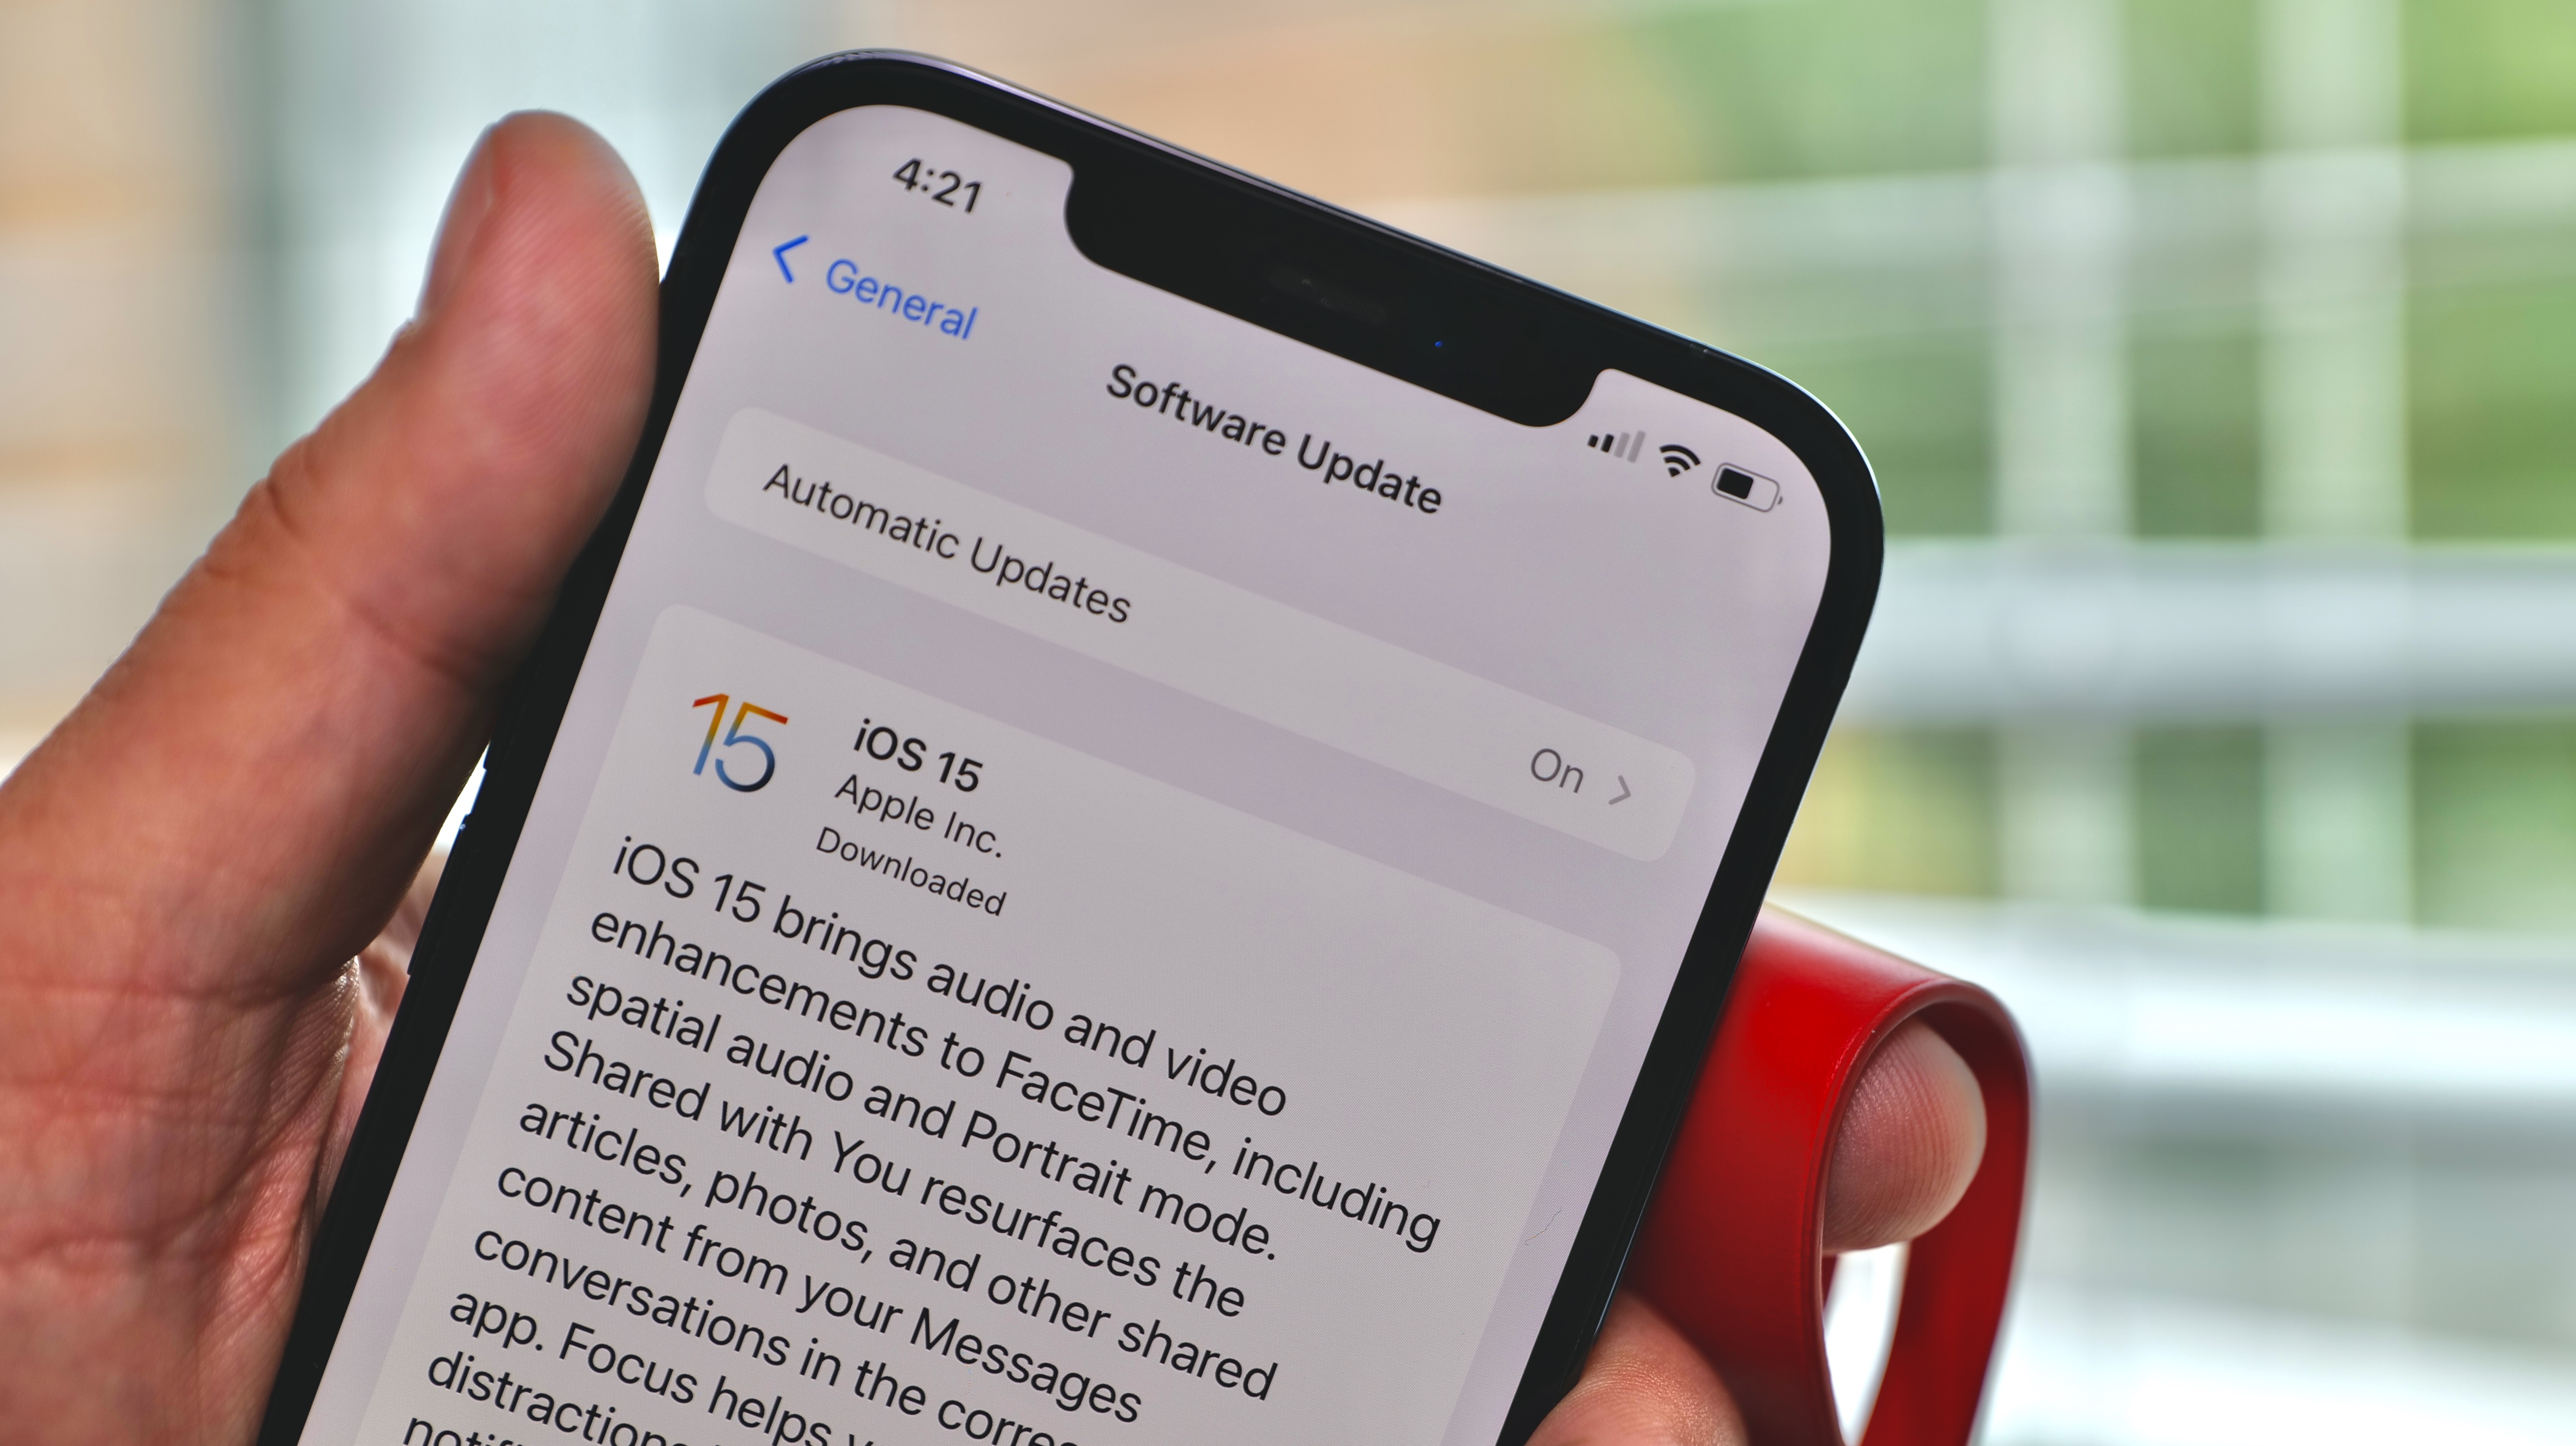 iOS 15 best features: How Focus mode improved my iPhone